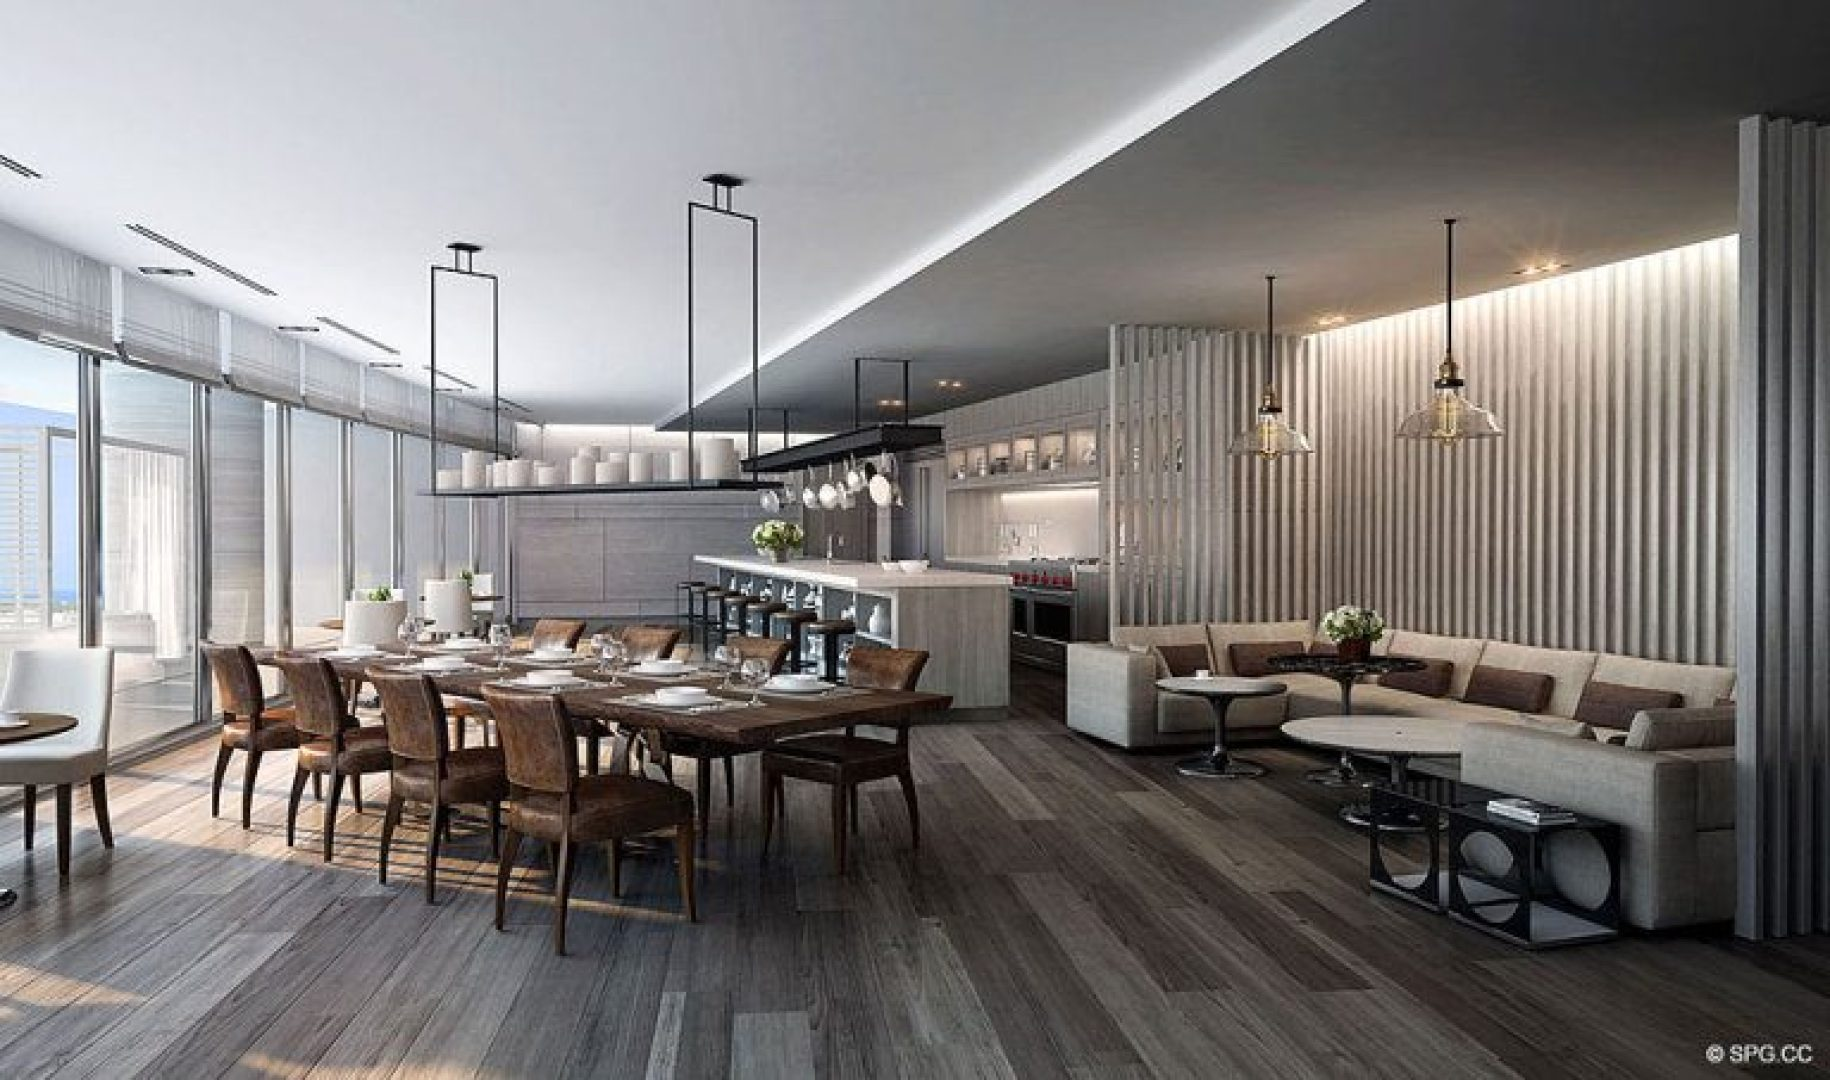 Culinary Club Room Concept for Riva, Luxury Waterfront Condos in Fort Lauderdale, Florida 33304.